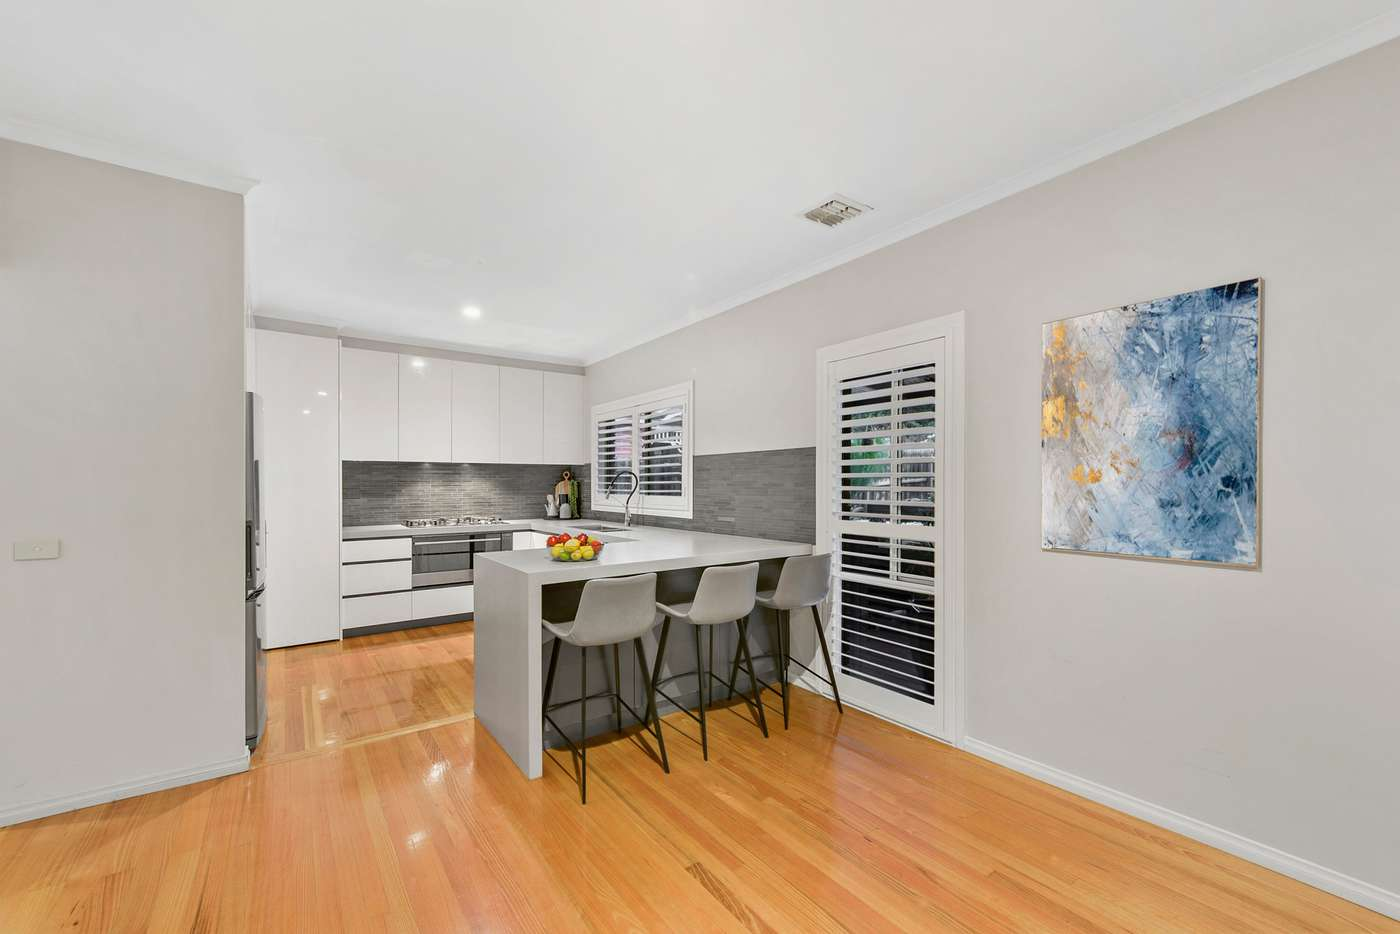 Sixth view of Homely house listing, 37 Queens Parade, Hillside VIC 3037